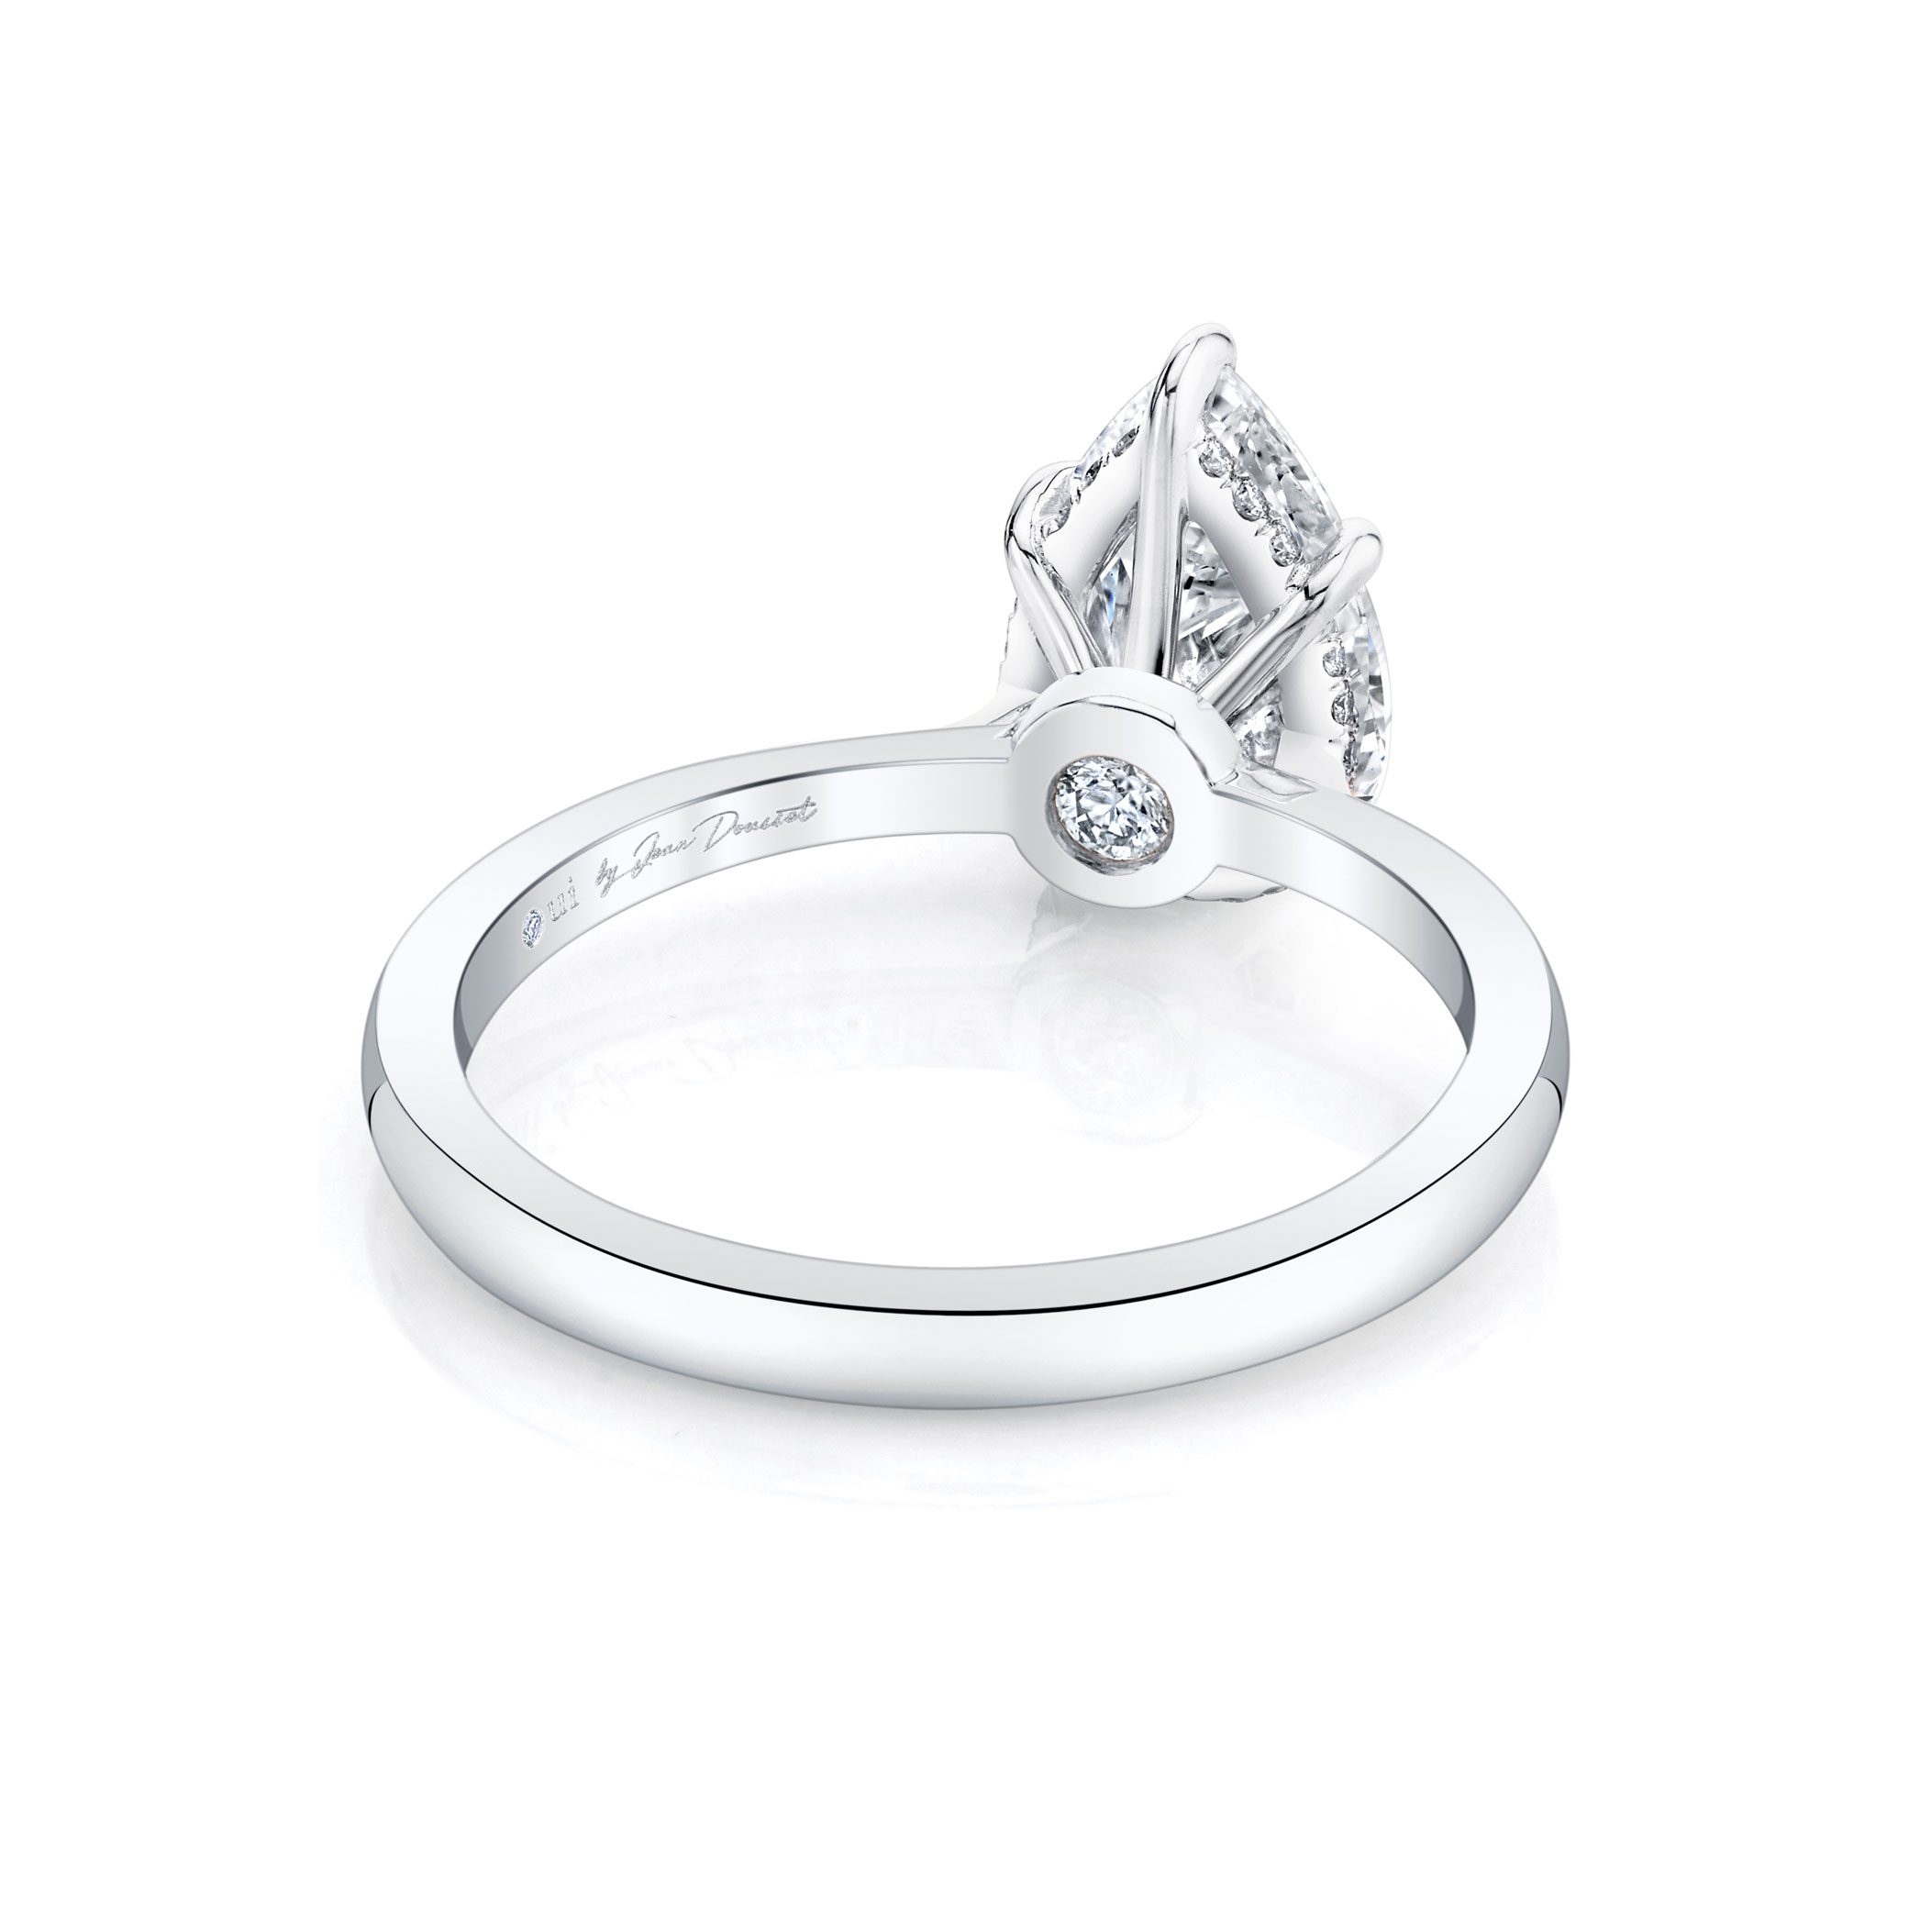 Colette Solitaire Pear Cut Lab Grown Diamond Engagement Ring in 18k white gold band. Ring Side View.